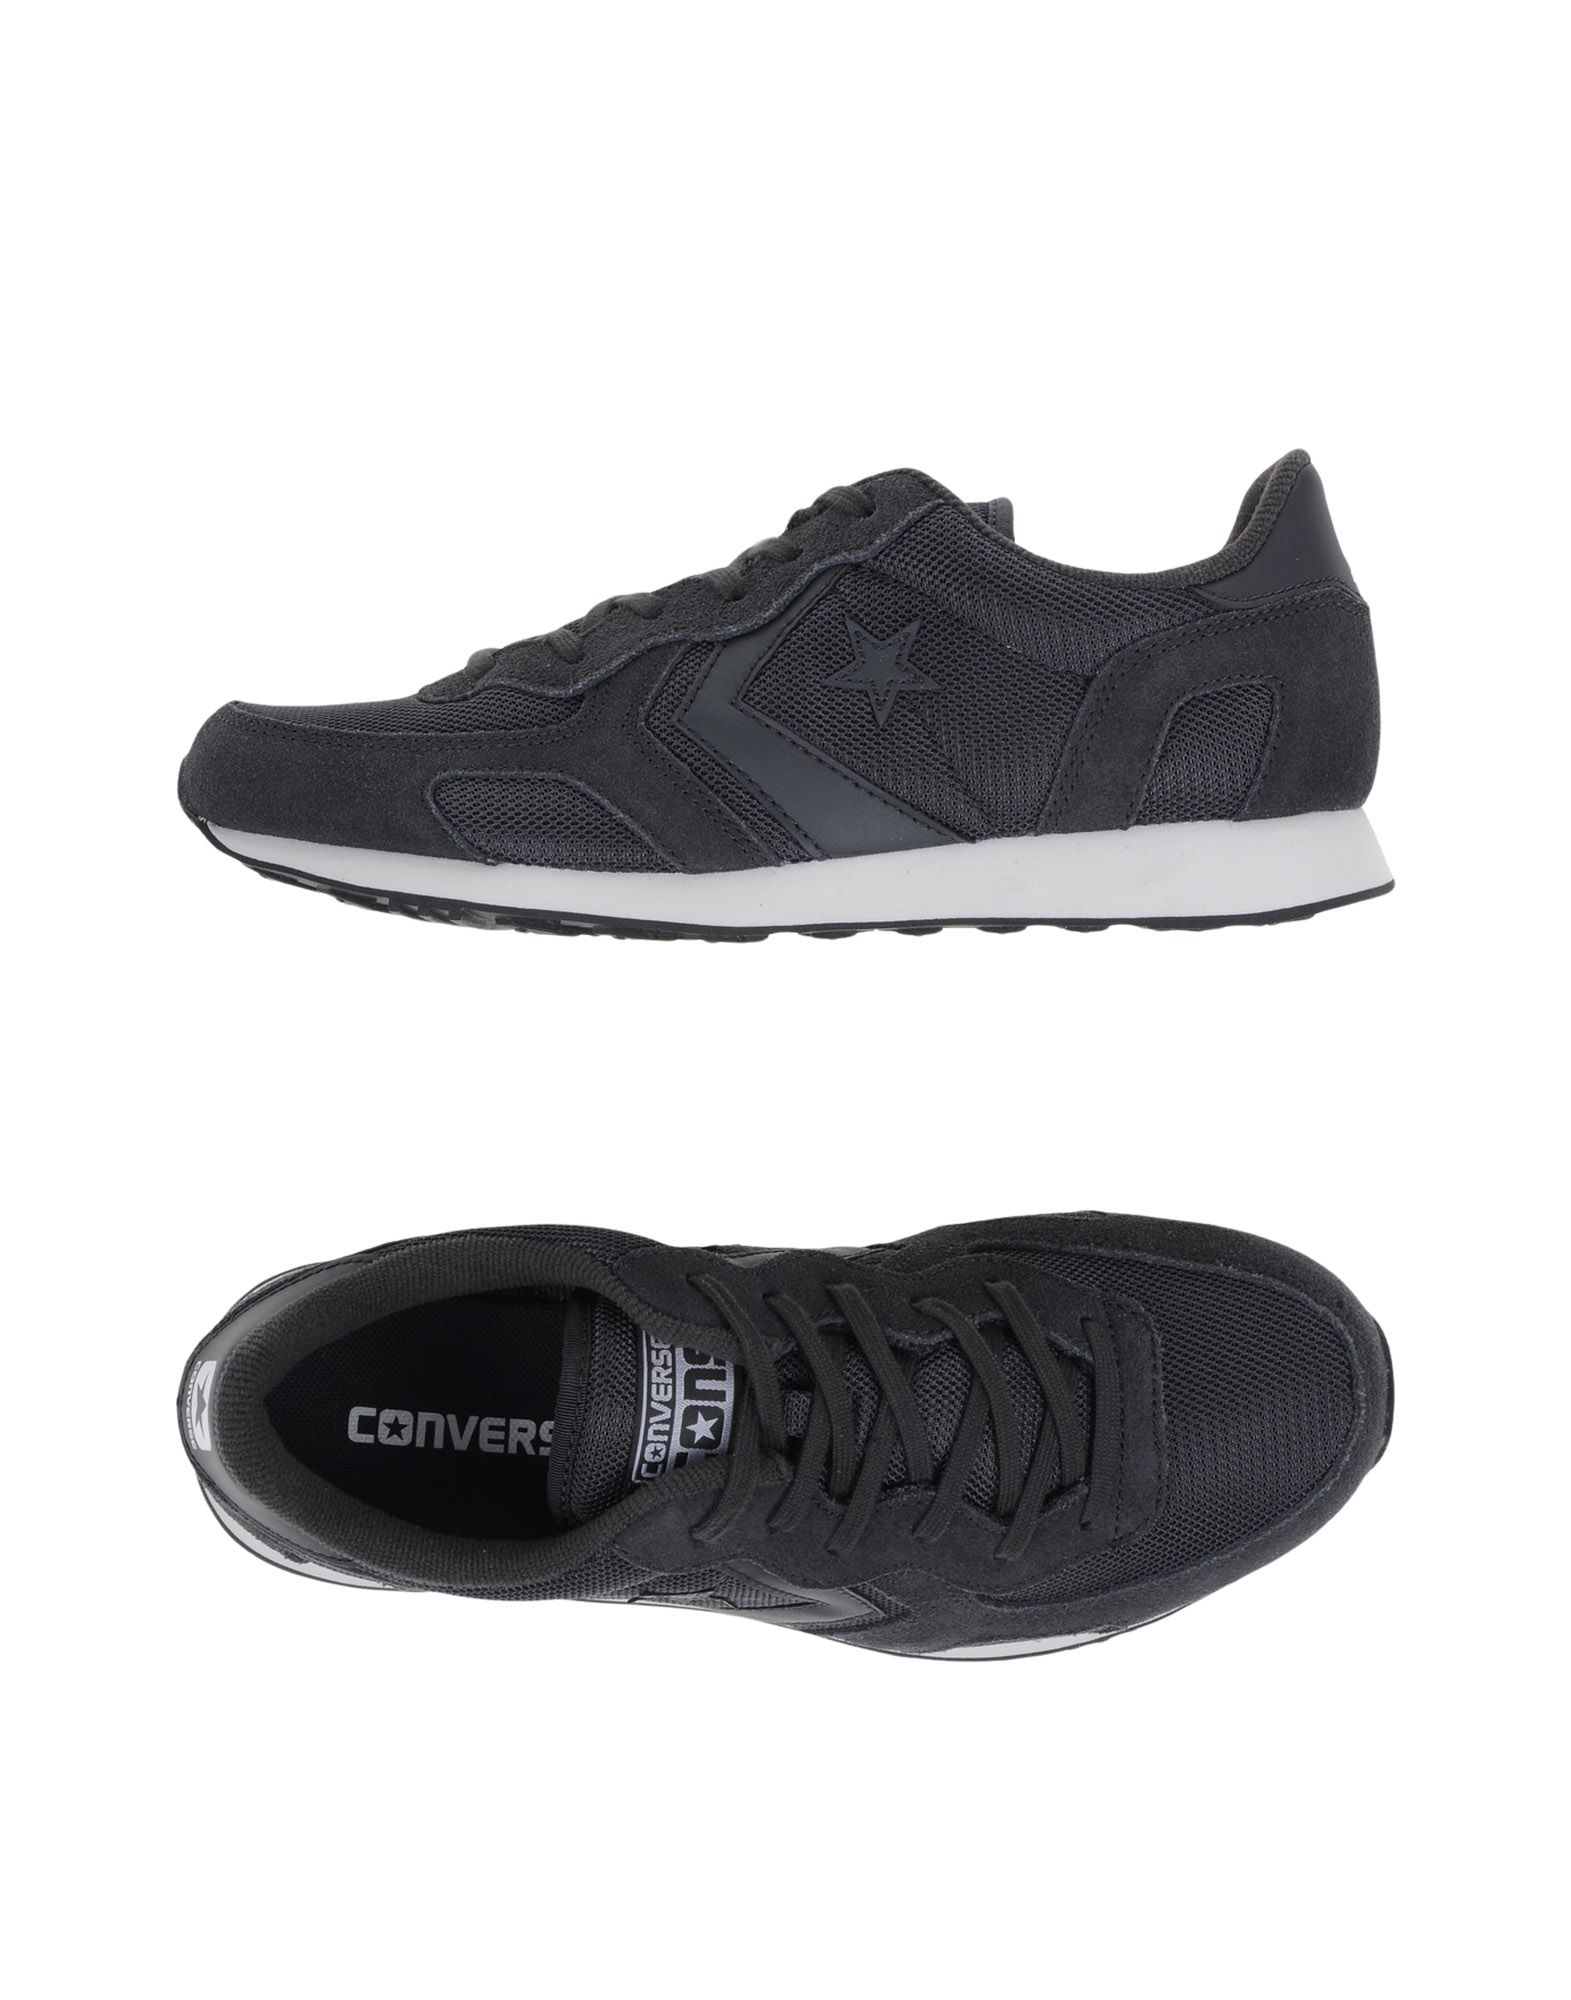 Sneakers Converse Cons Auckland Racer Ox Mesh/Suede - Uomo - 11003357PX